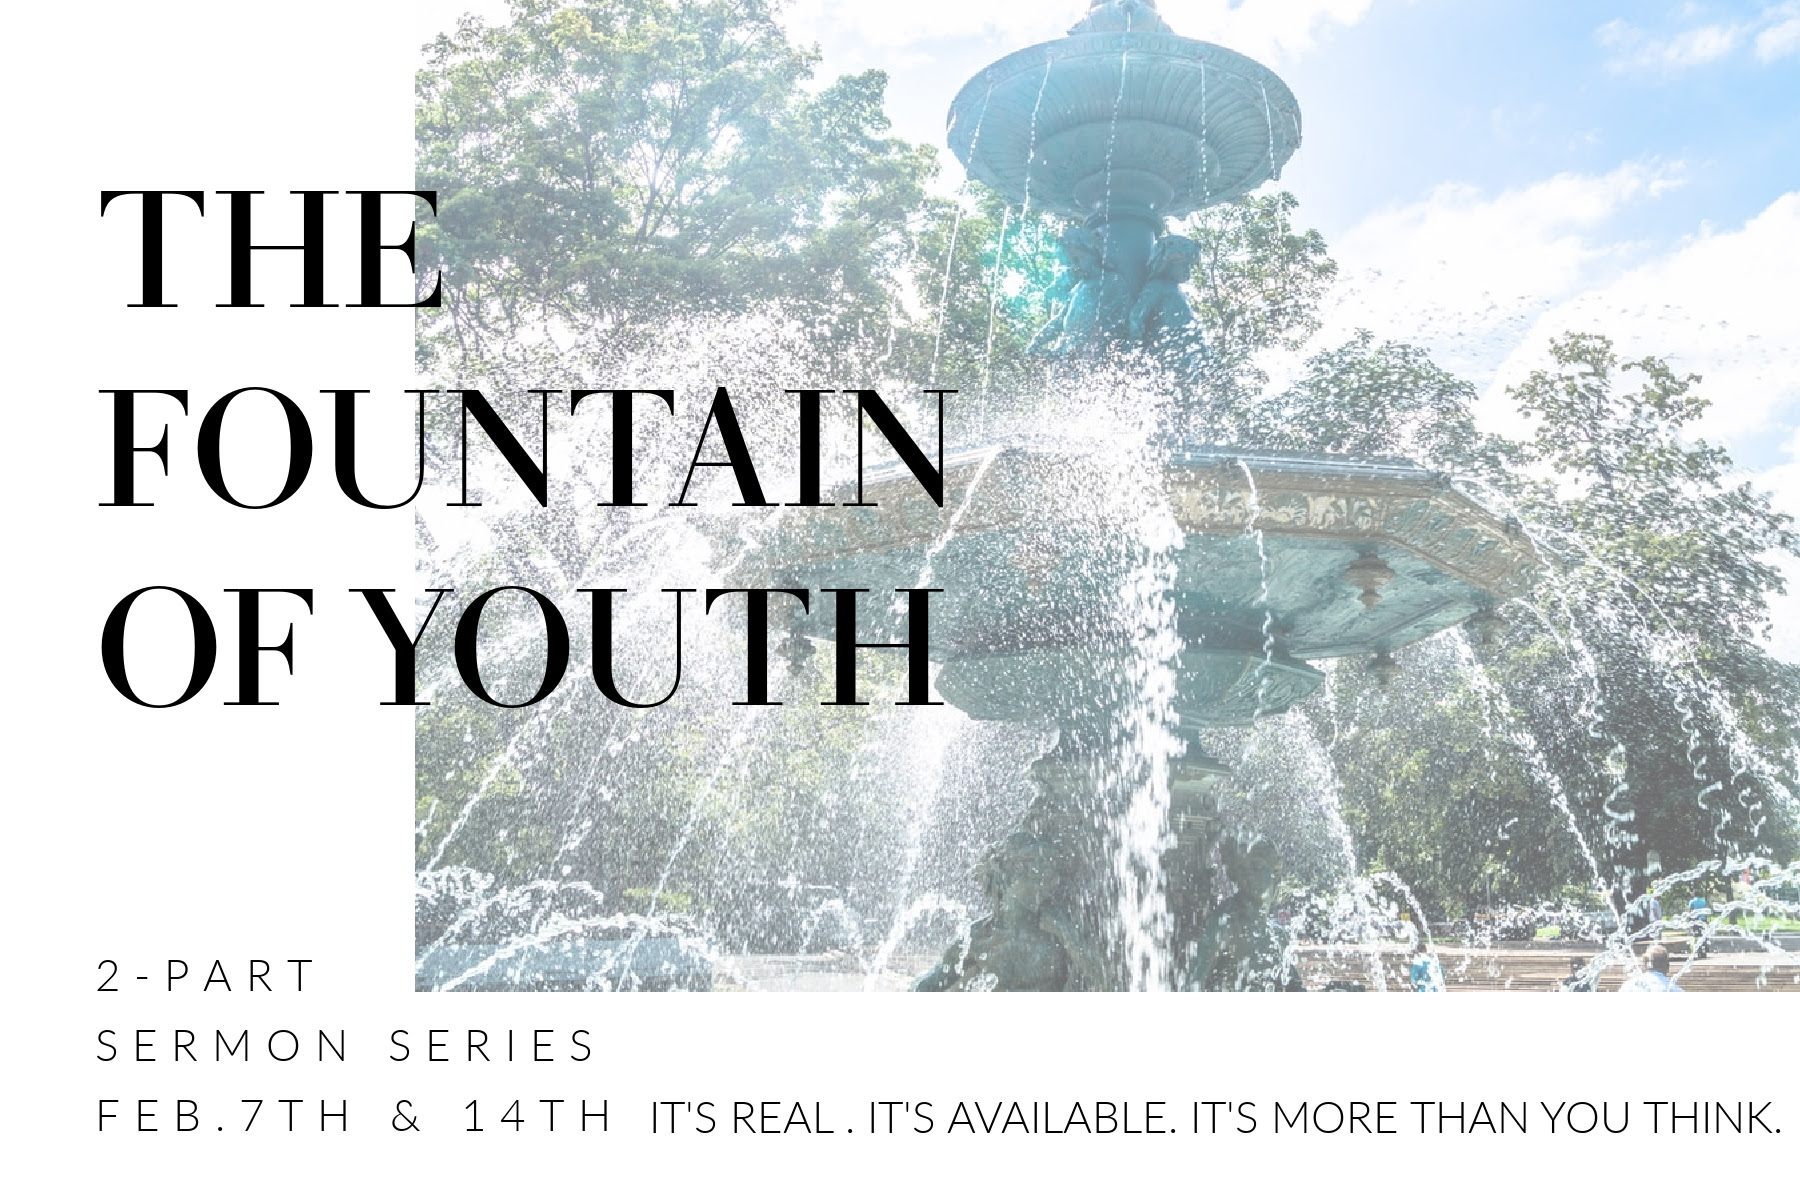 The Fountain of Youth 2 (1)